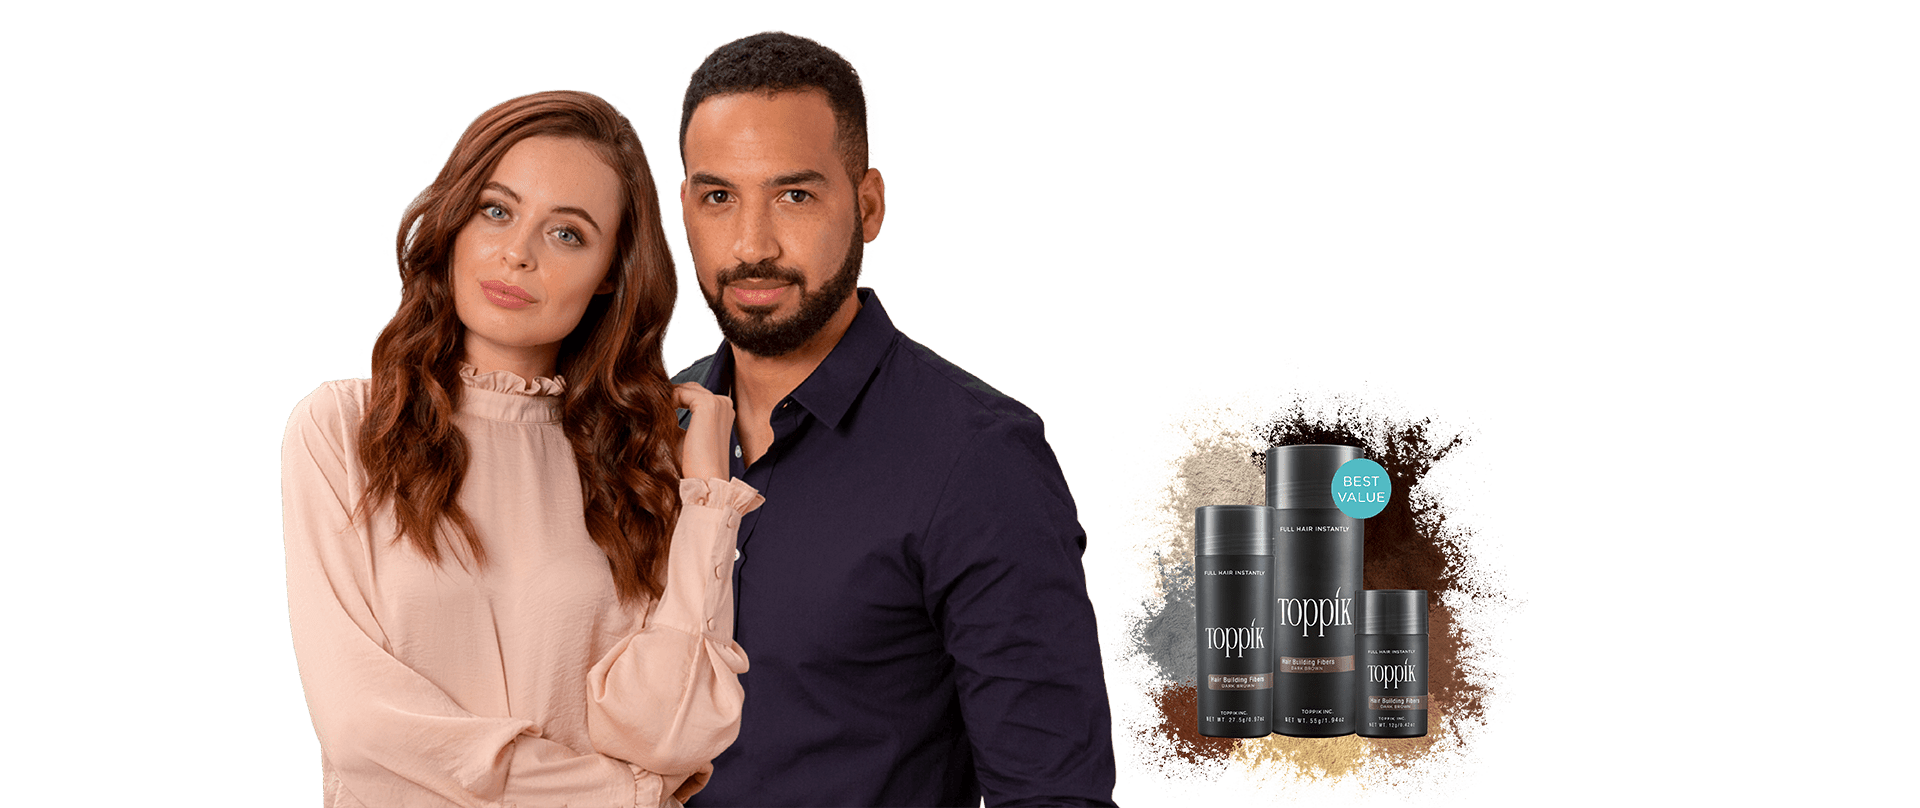 Hair fibres products that blend naturally